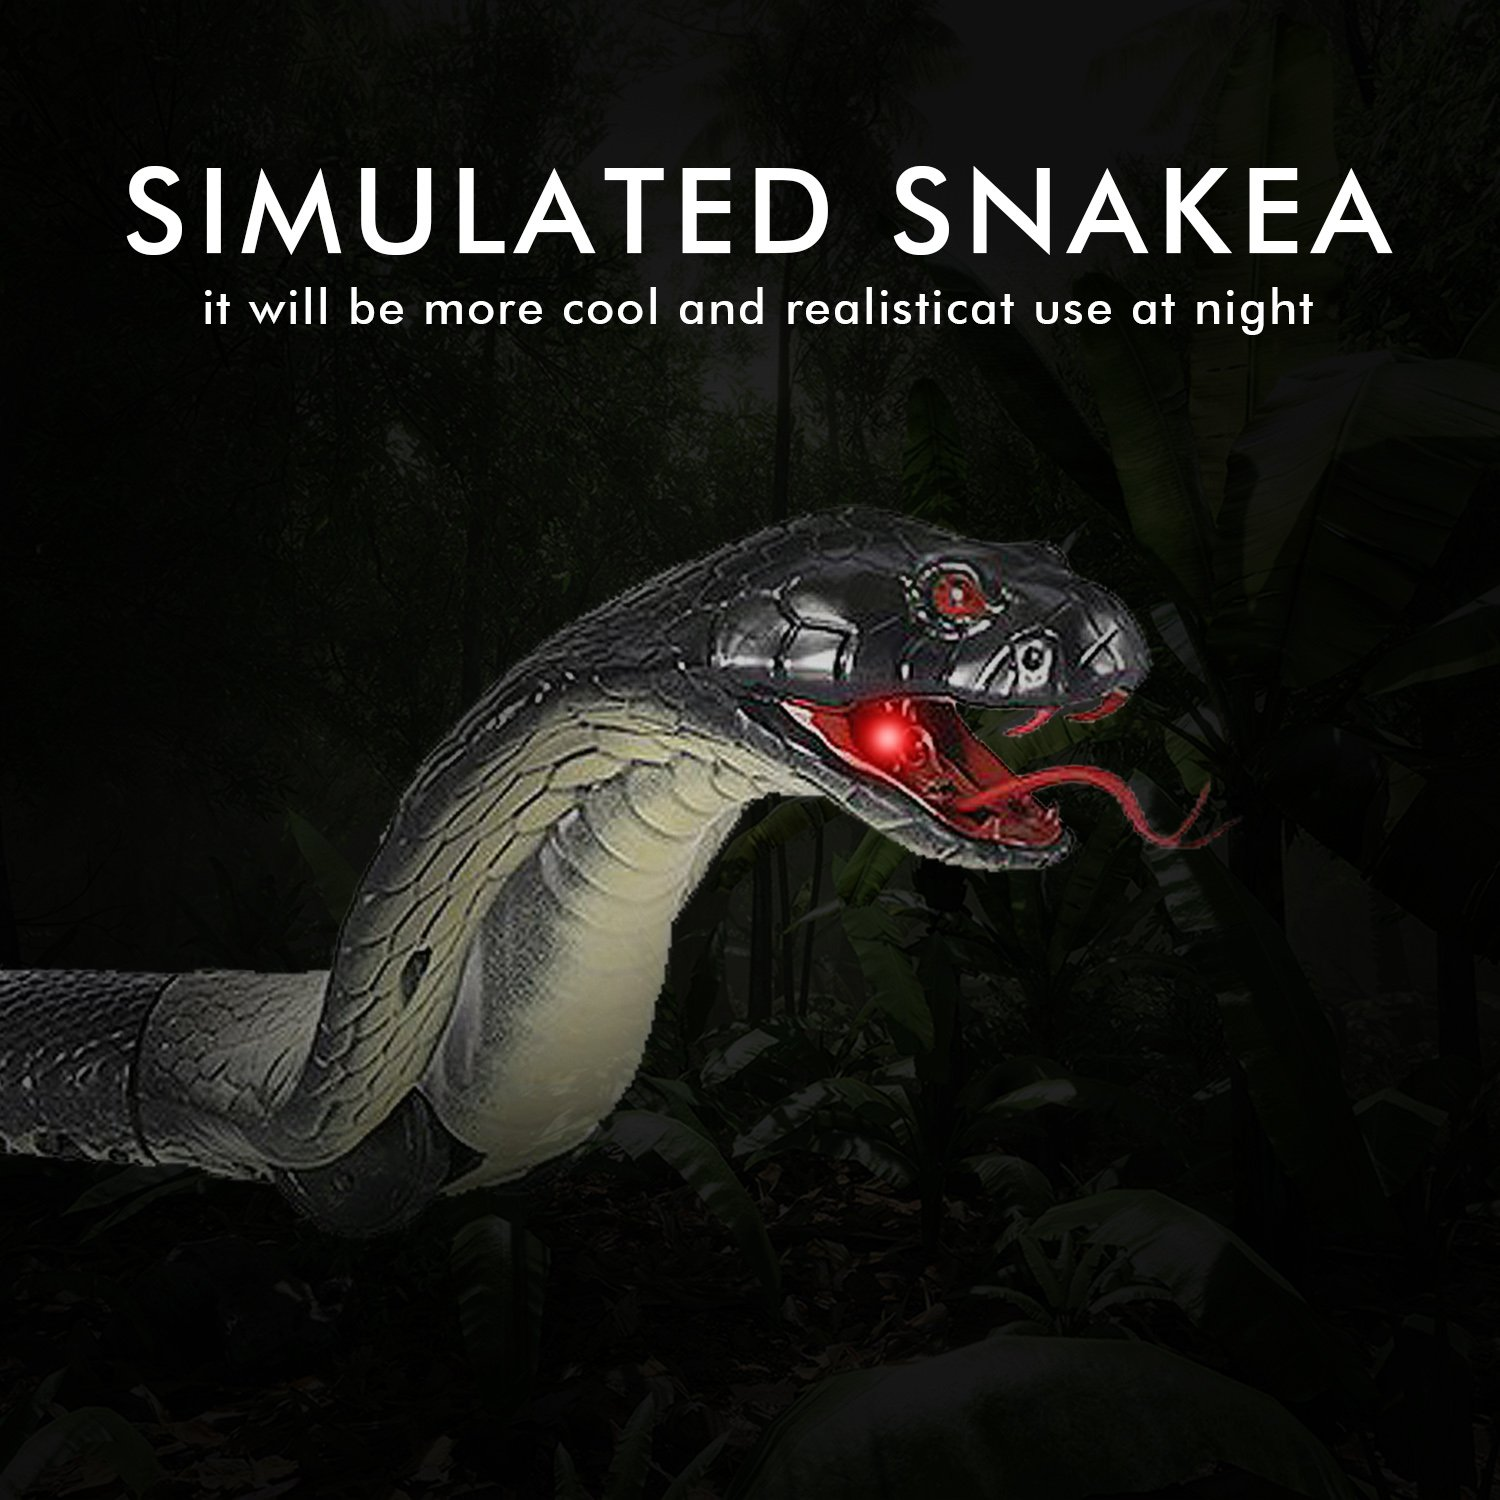 Greatstar Remote Control Snake Toy for Kids 17.5 Inch Rechargeable Realistic Cobra Snake King Naja Toy for Christmas Hallowene Gift by Greatstar (Image #3)